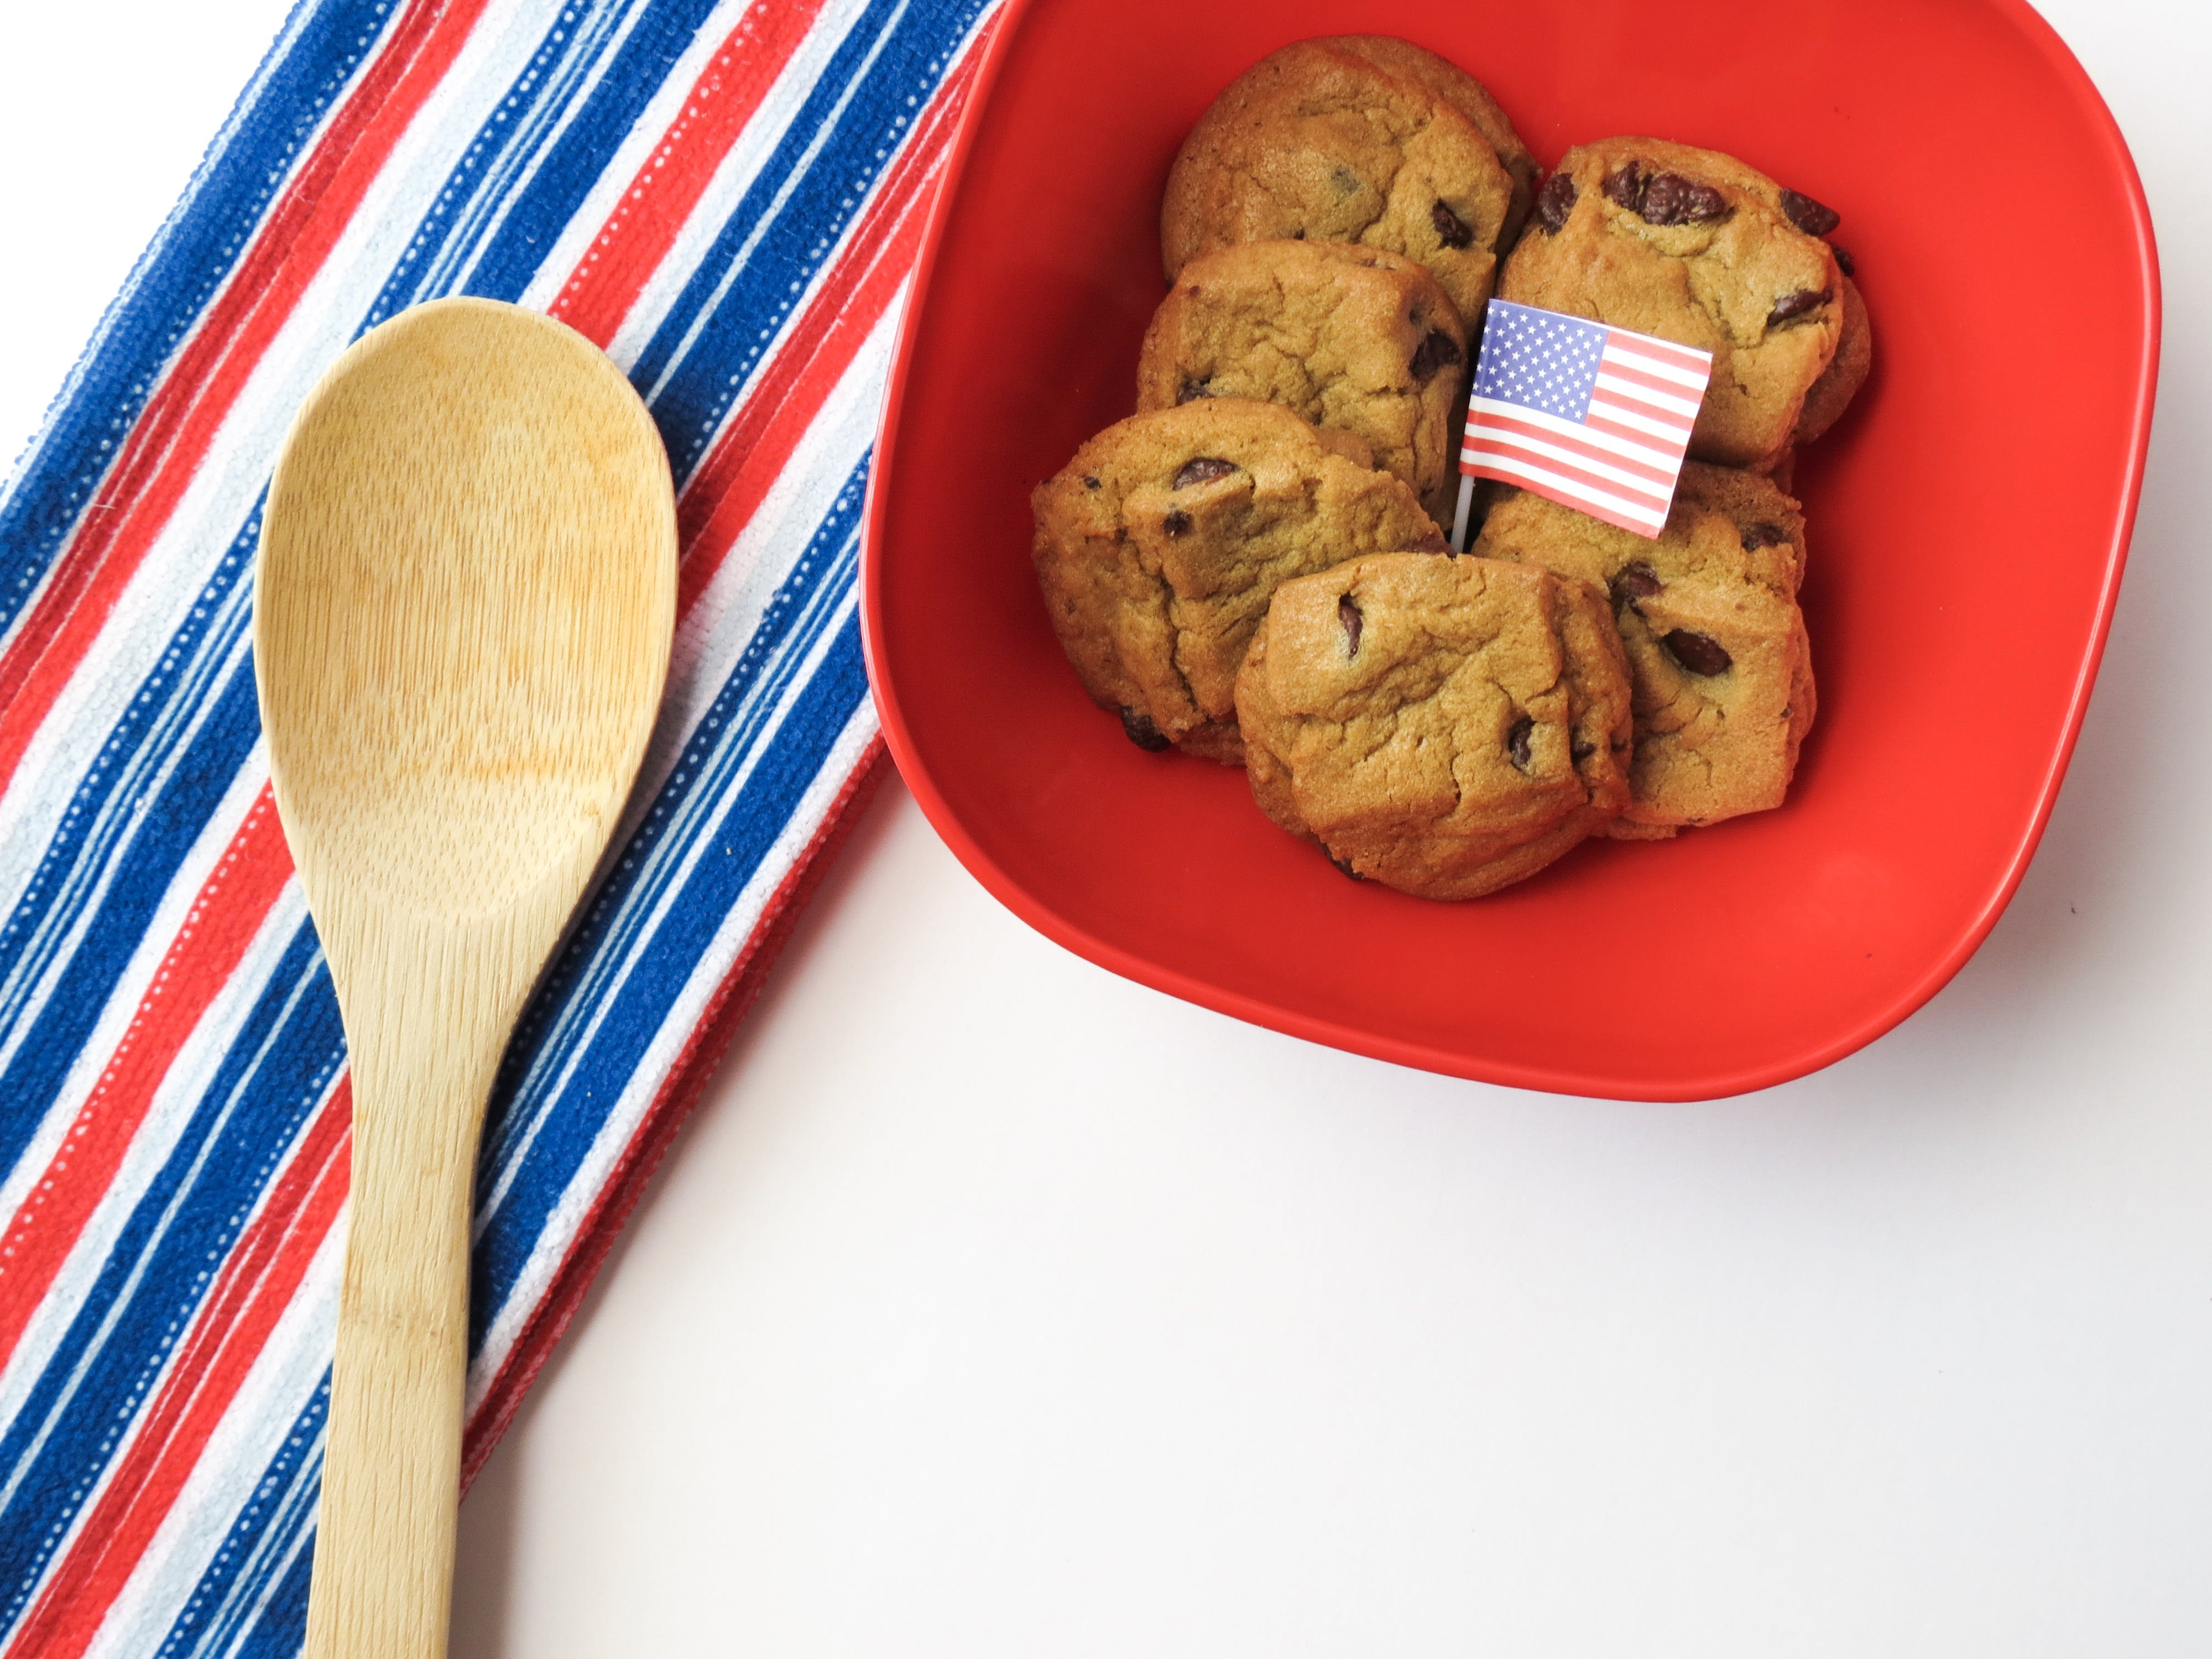 Free stock photo of wood, flag, wooden, biscuits